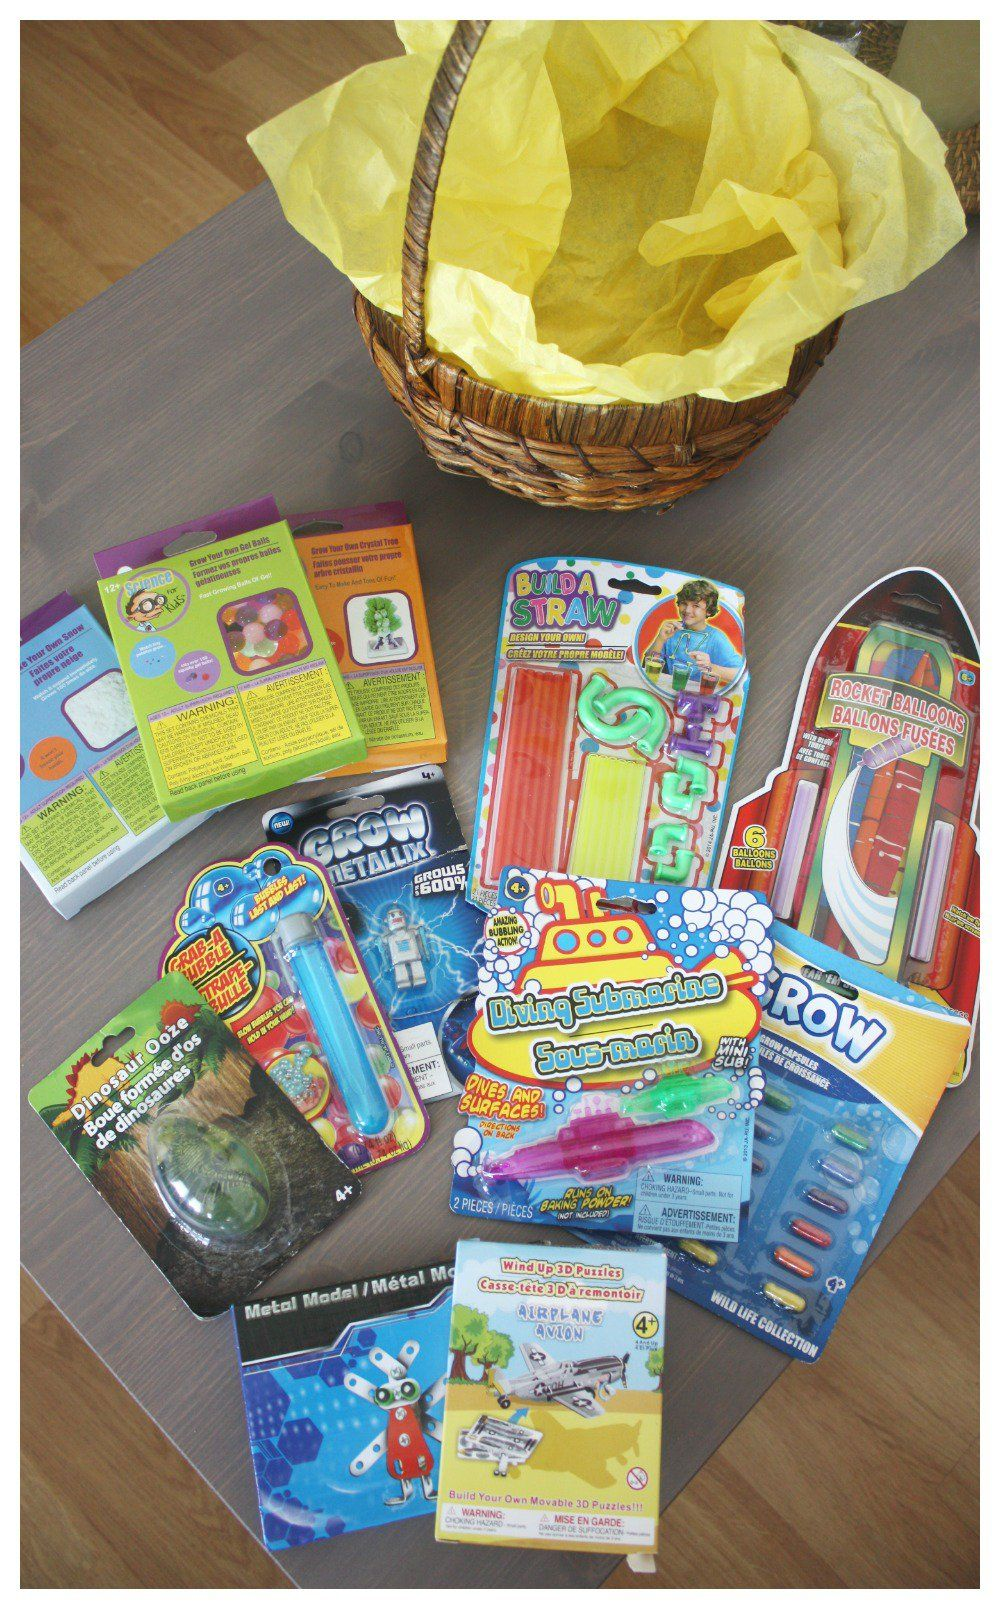 Easter basket dollar store science activities rockets bubbles make a simple science themed easter basket gift for kids using dollar store science kits the dollar store has a variety of simple science ideas negle Choice Image